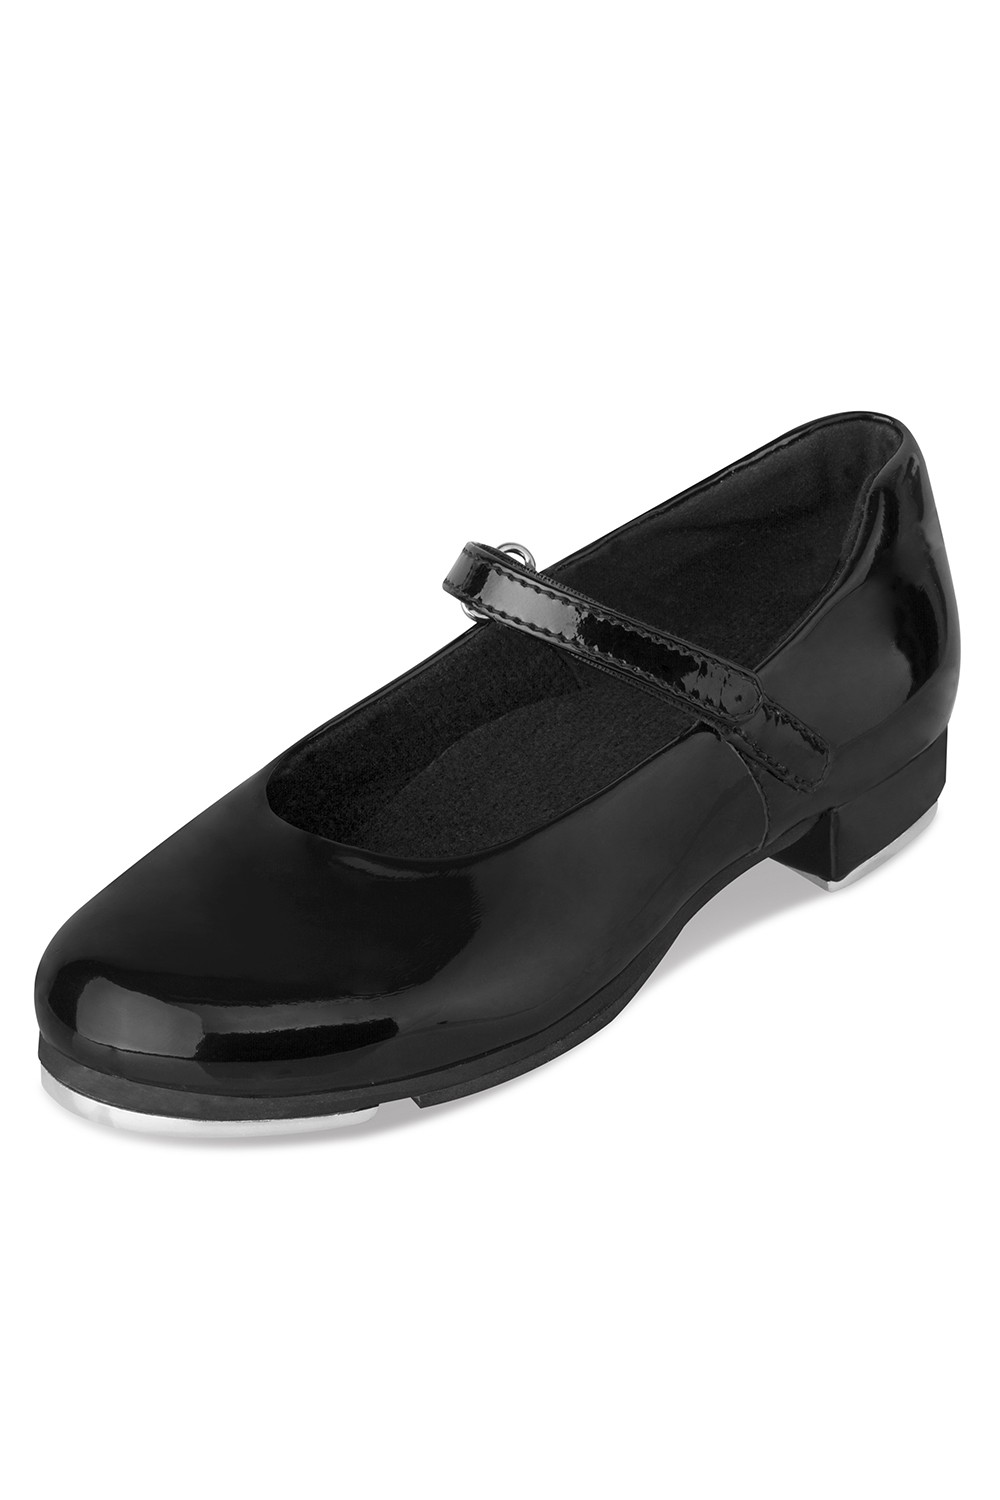 Rhythm Tap Women's Tap Shoes